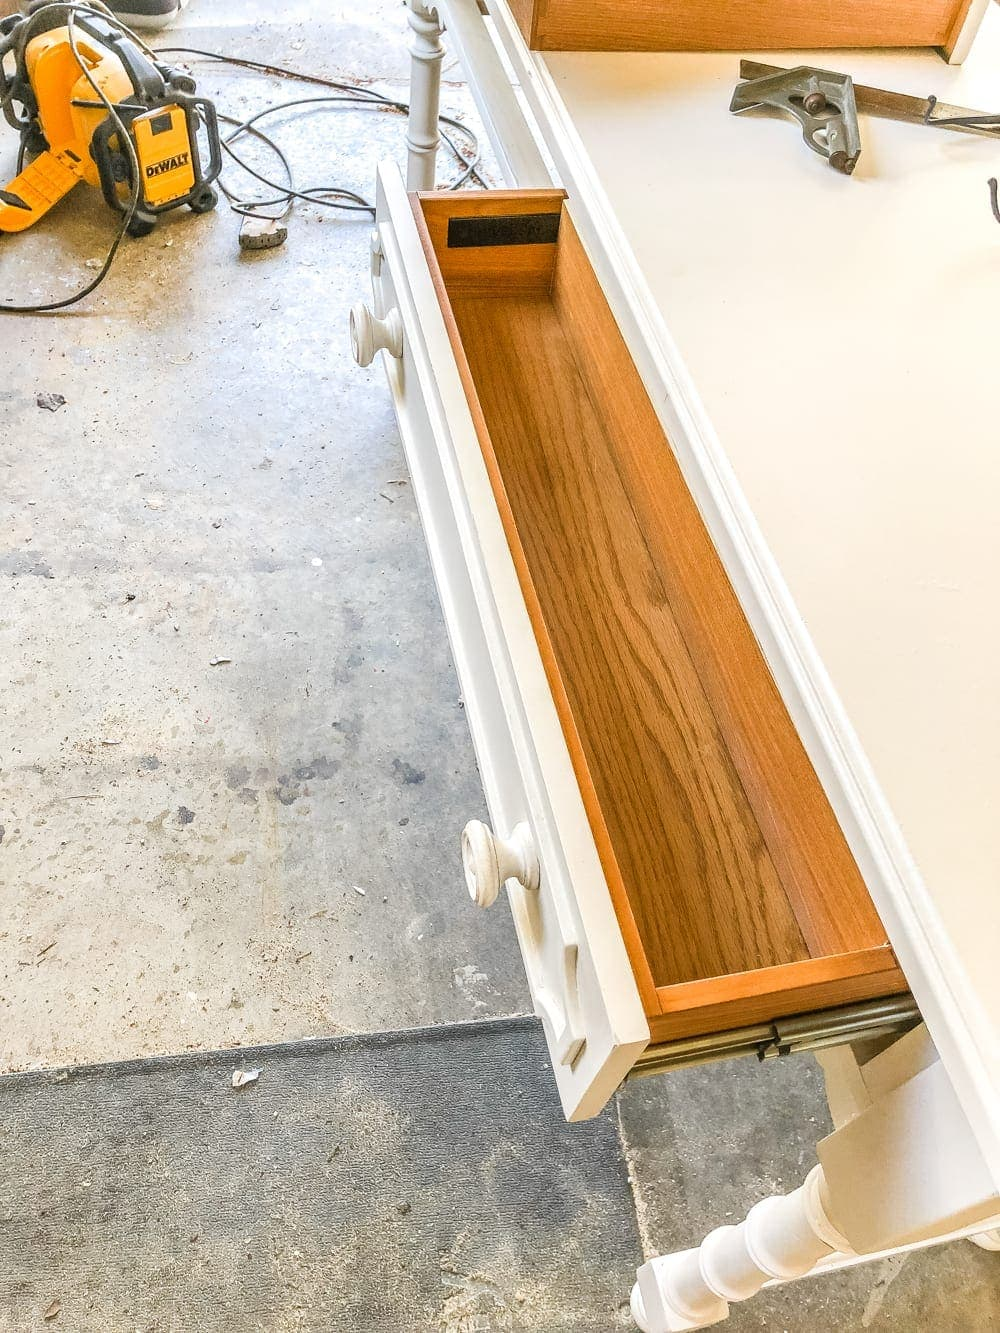 How to Turn a Console Table Into a Bathroom Vanity | blesserhouse.com - A tutorial for how to reconstruct a console table to repurpose as a bathroom vanity and leave drawers functional underneath sinks.